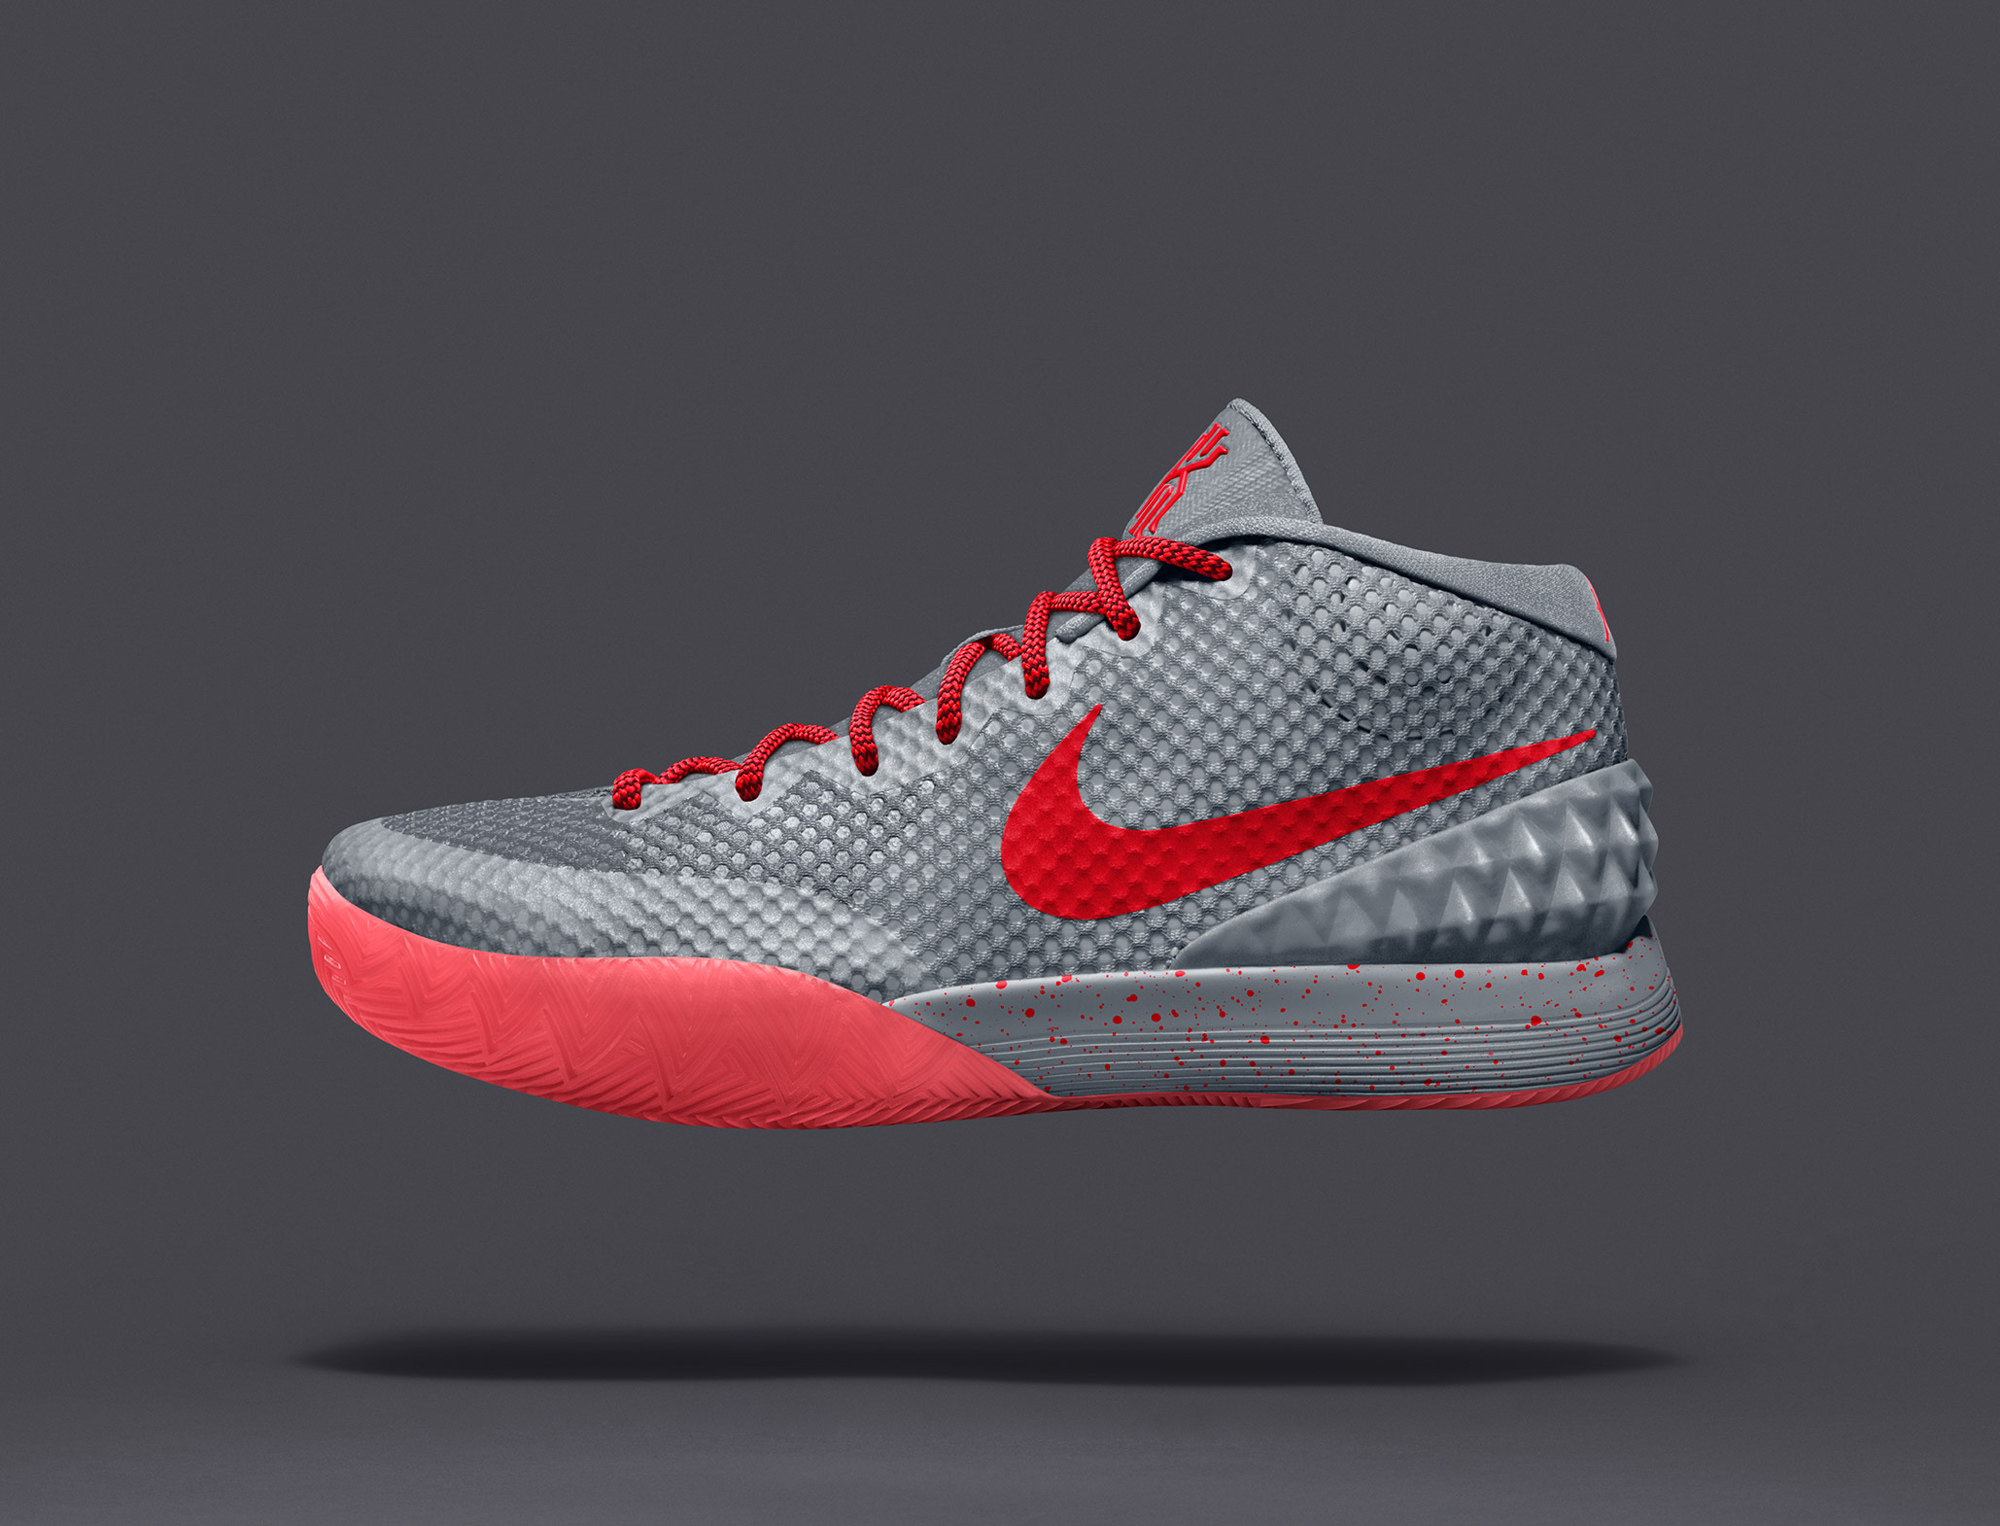 new product 6c073 c0231 kyrie irving shoes nike nike football